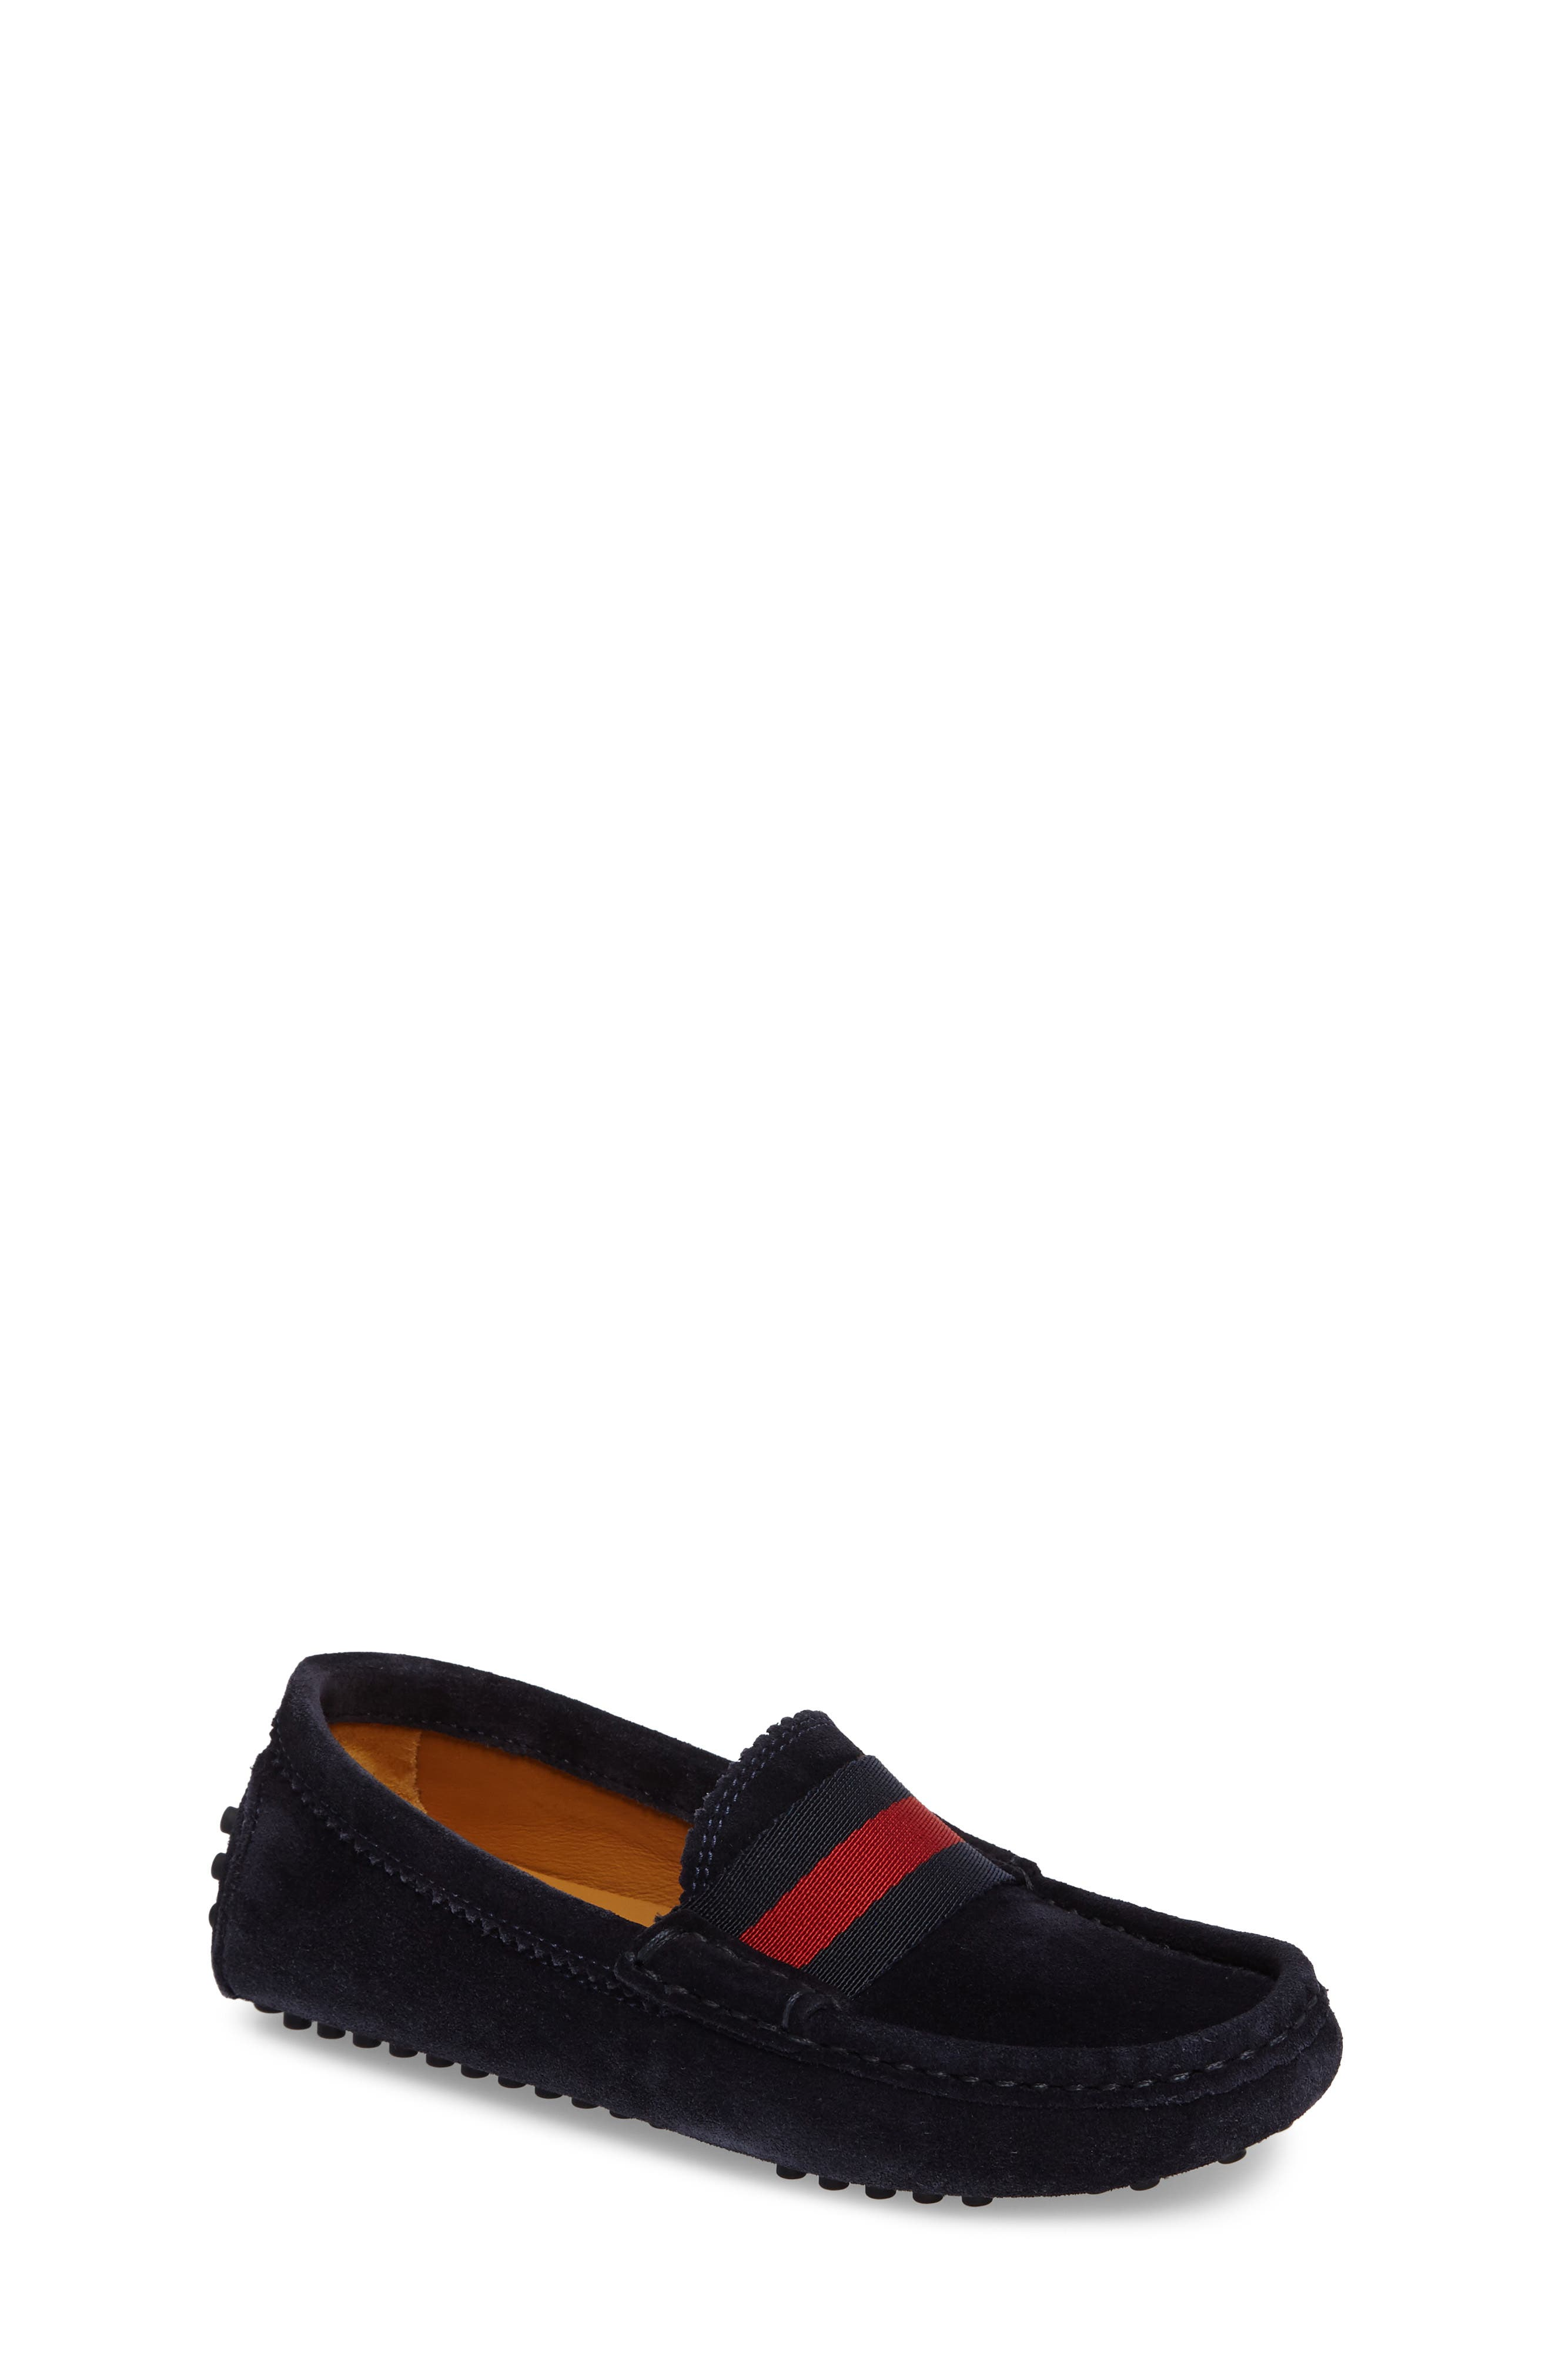 Main Image - Gucci Dandy Junior Driving Shoe (Toddler & Little Kid)